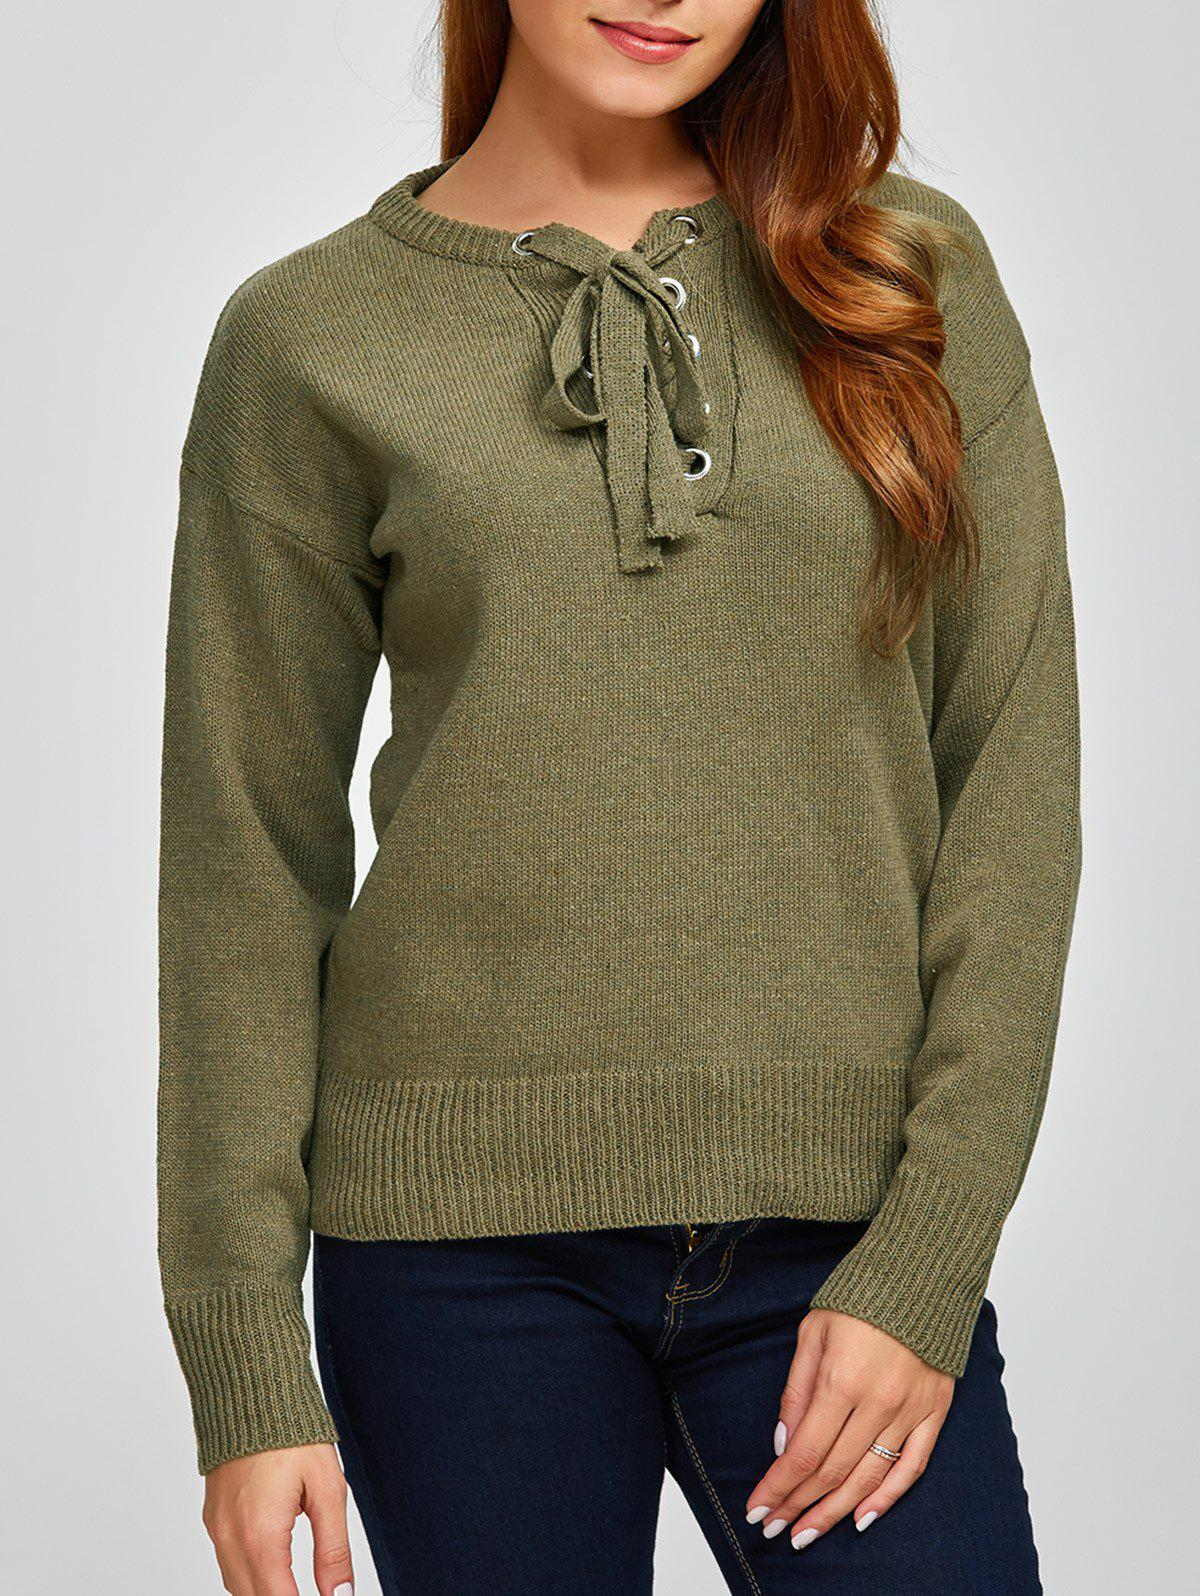 Lace-Up Loose Casual Sweater - ARMY GREEN ONE SIZE